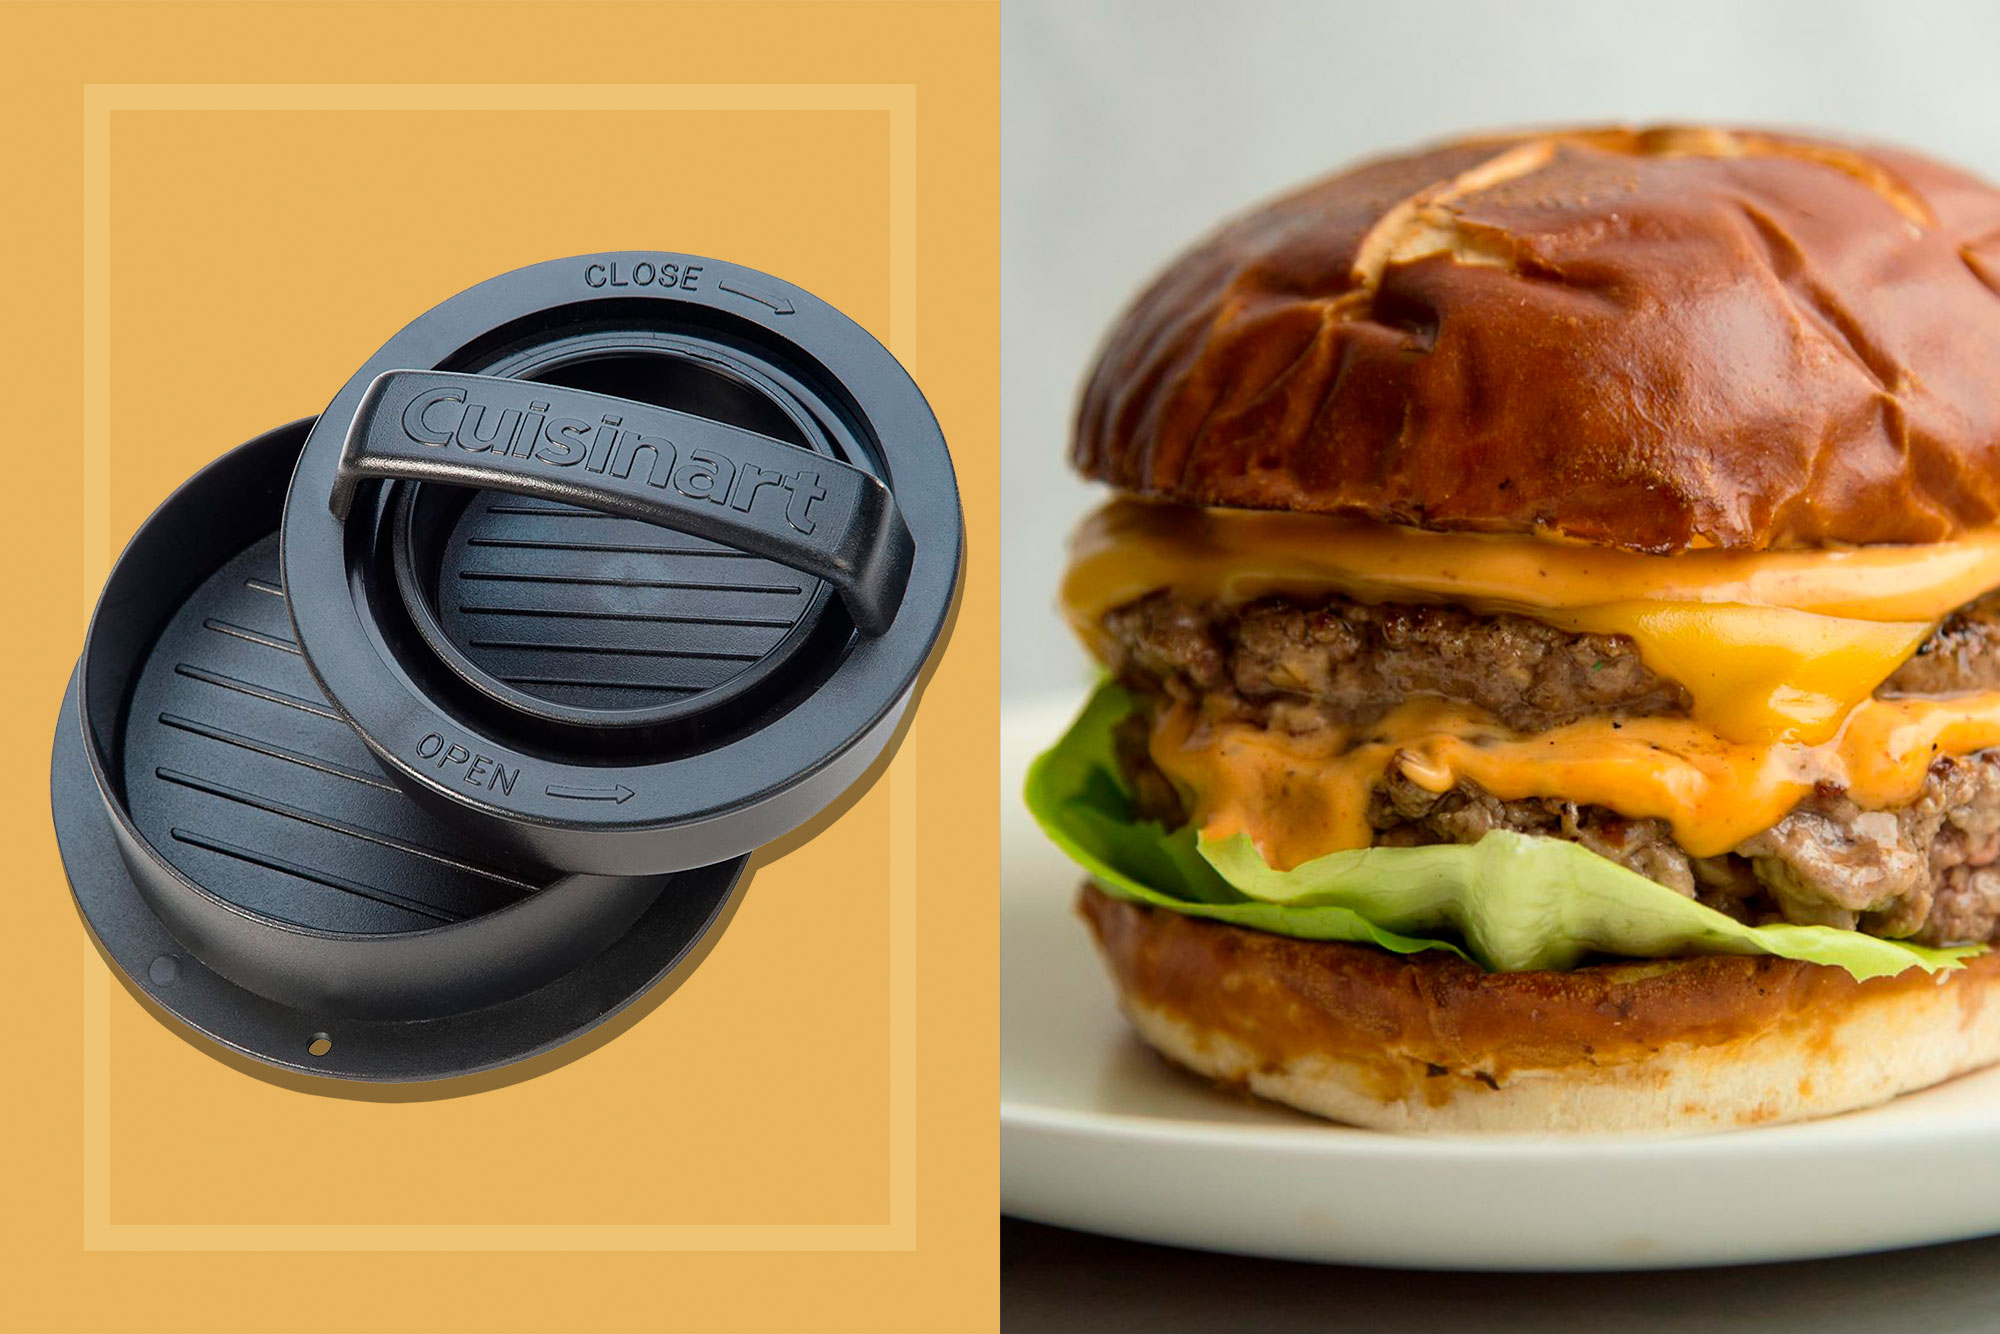 Cuisinart Burger Press alongside a cheeseburger